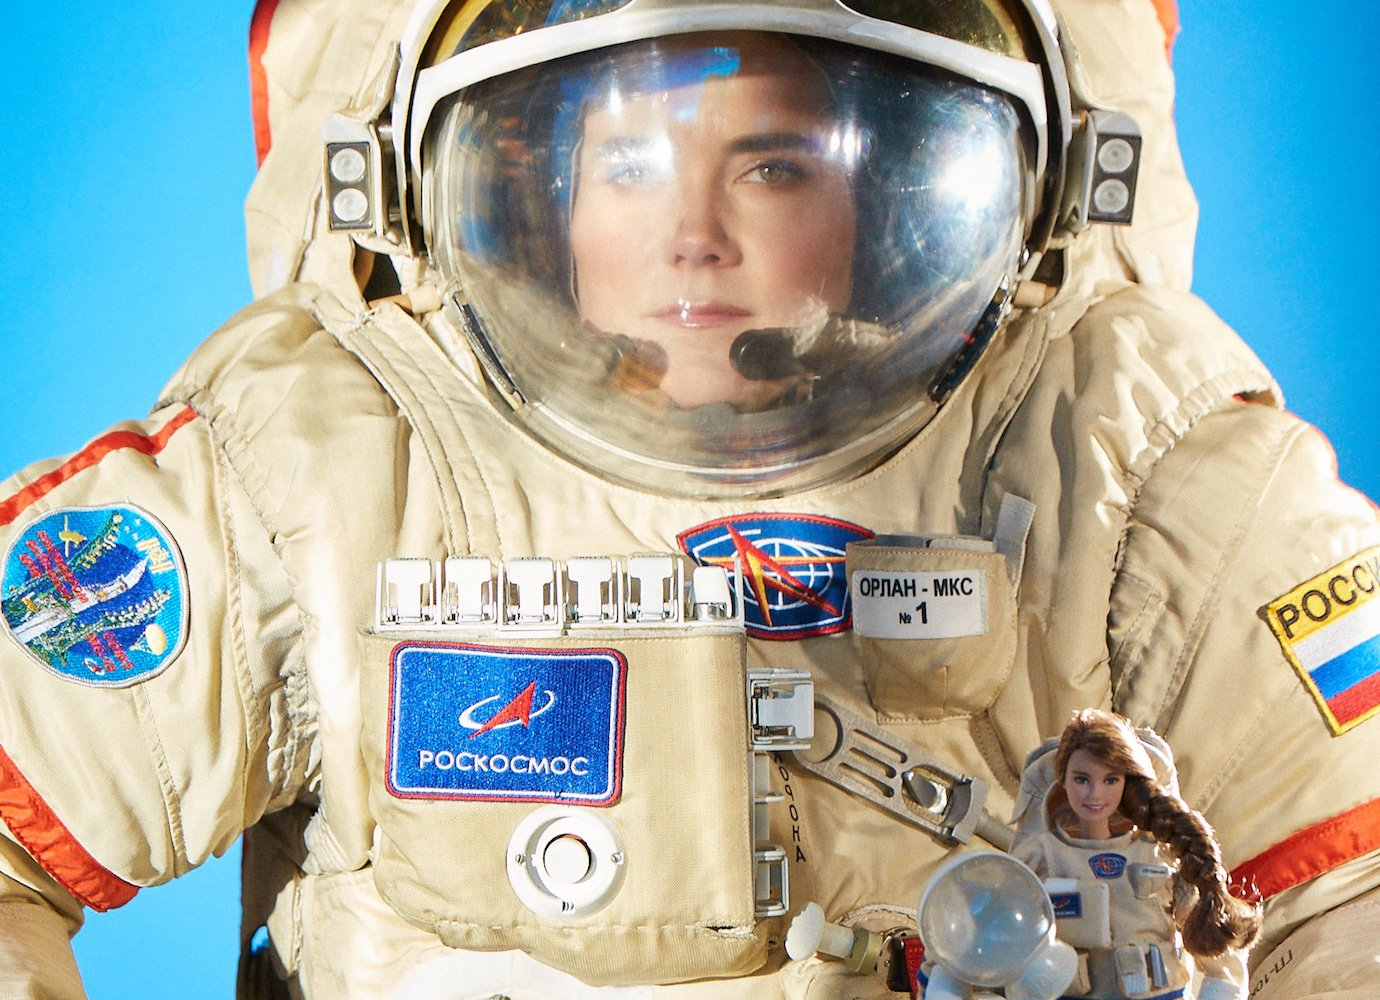 Barbie honours Russia's only female cosmonaut with its new doll